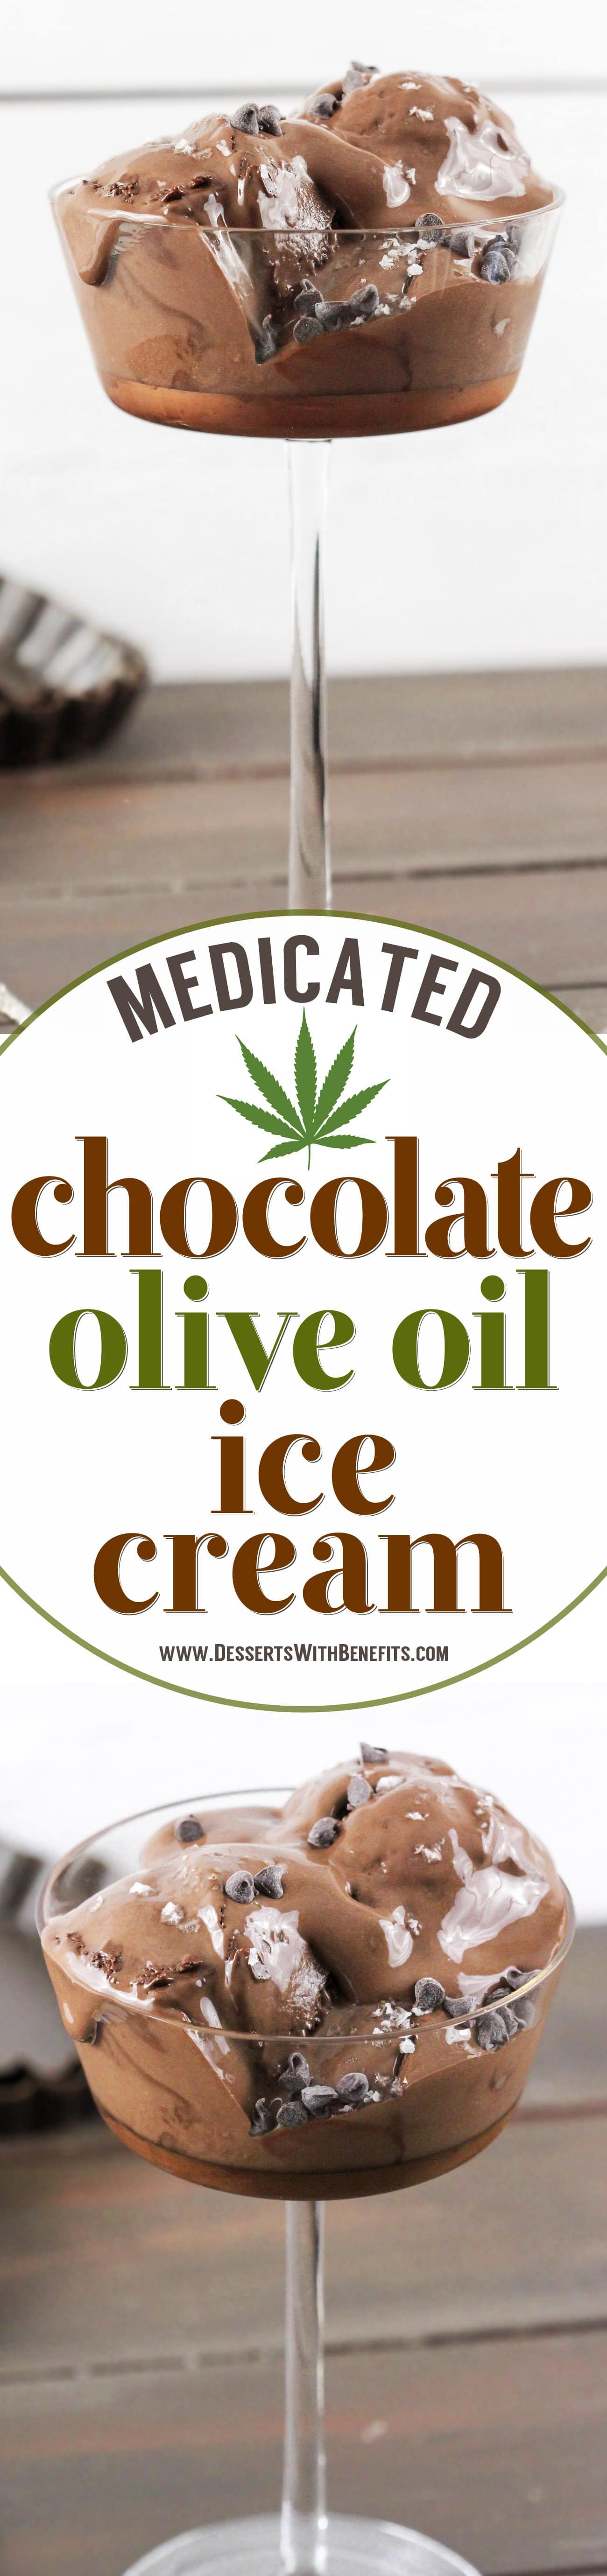 This 5-ingredient Chocolate Olive Oil Ice Cream is ultra creamy, incredibly rich, and perfectly sweet, and it's made in a blender too (no ice cream maker required)! Best of all, it's refined sugar free and full of healthy fats, with a punch of protein, and a secret ingredient:  cannabis-infused olive oil! Get into the homemade marijuana edibles game with this Medicated Chocolate Olive Oil Ice Cream. Way better than pot brownies, am I right?